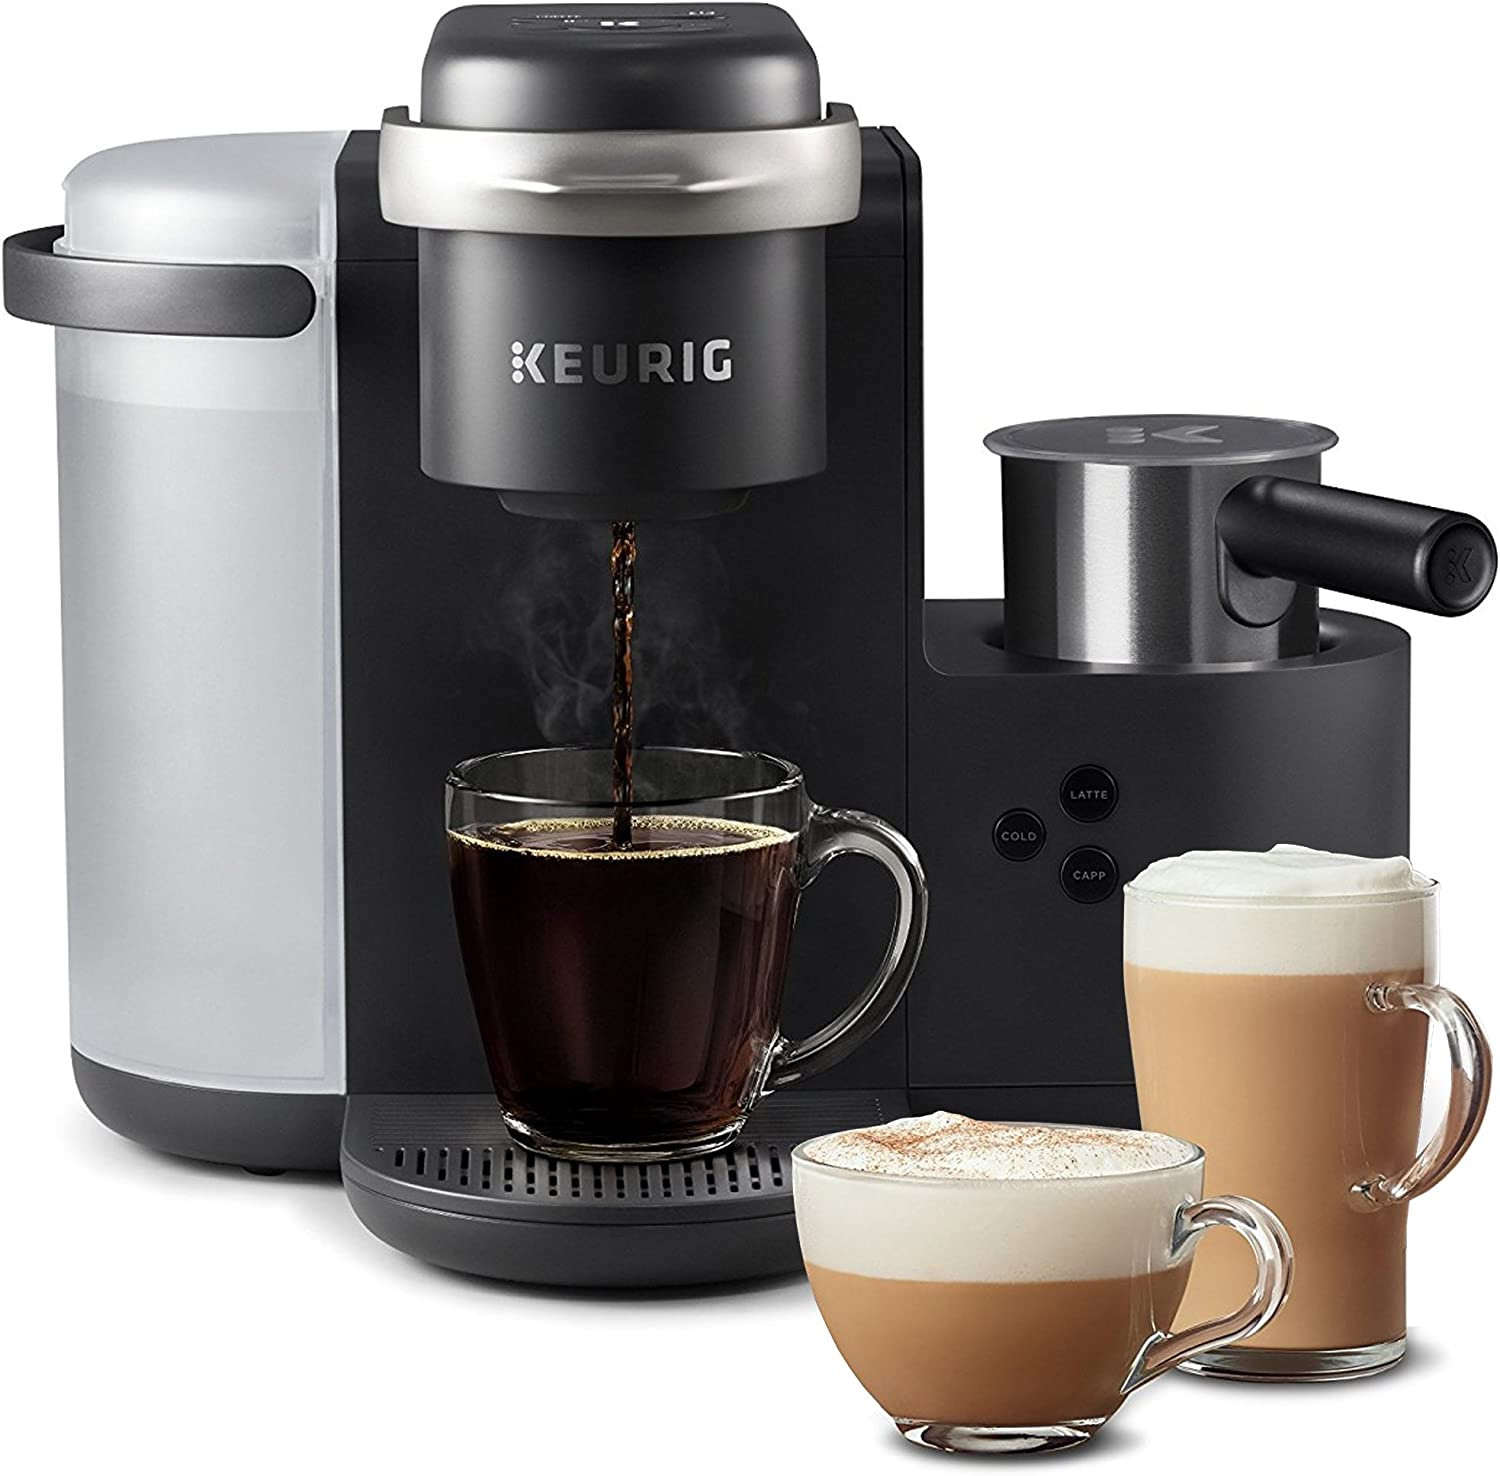 Keurig K-Café Coffee Maker, Single Serve K-Cup Pod Coffee, Latte and Cappuccino Maker,With Dishwasher Safe Milk Frother, Coffee Shot Capability, Compatible With all K-Cup Pods, Charcoal (Renewed)